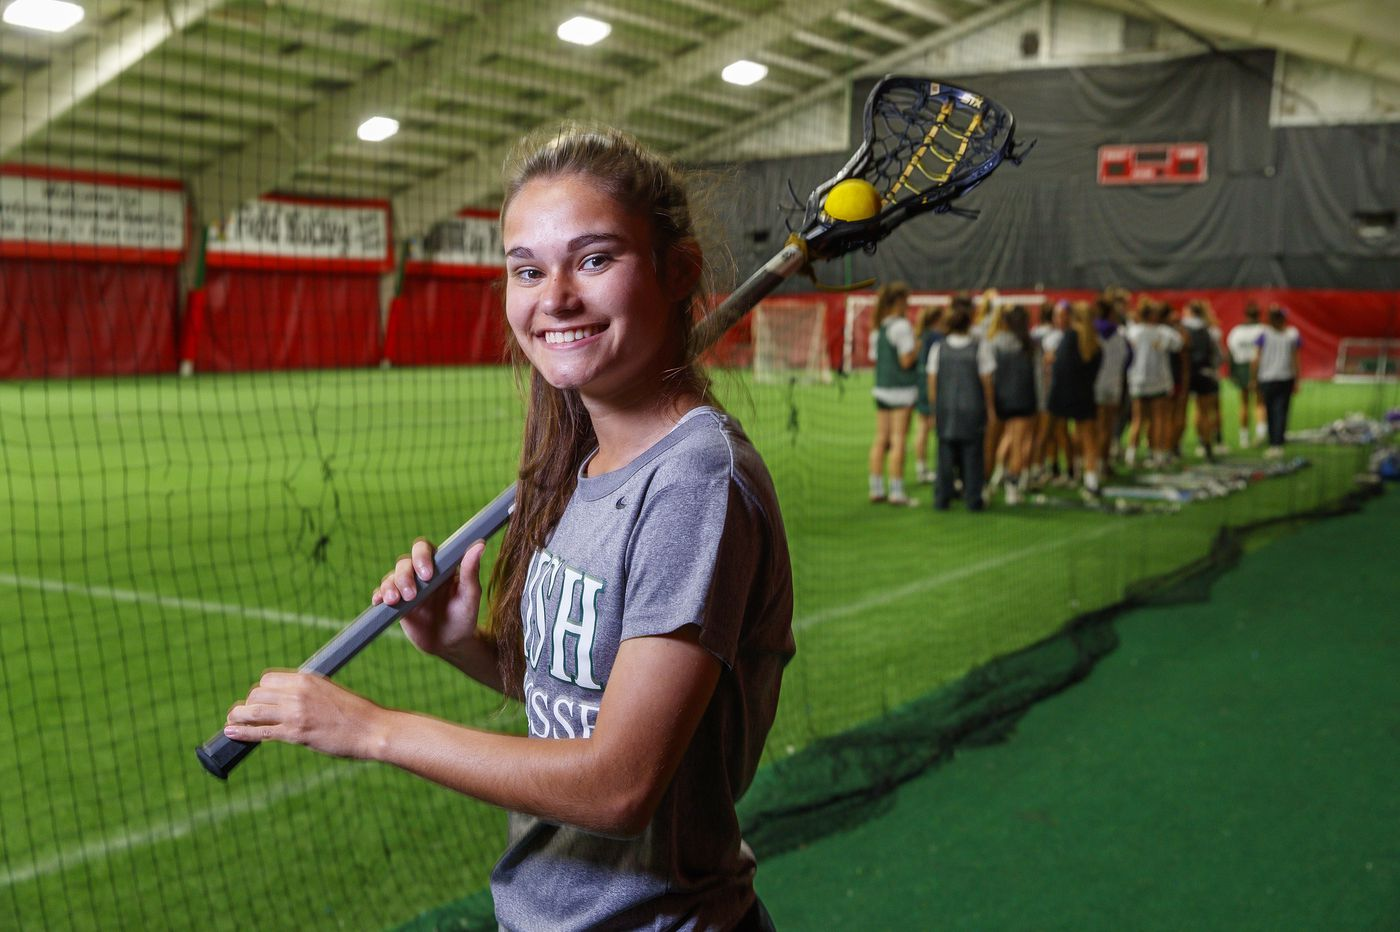 Camden Catholic girls' lacrosse is a family affair for Katie Walsh